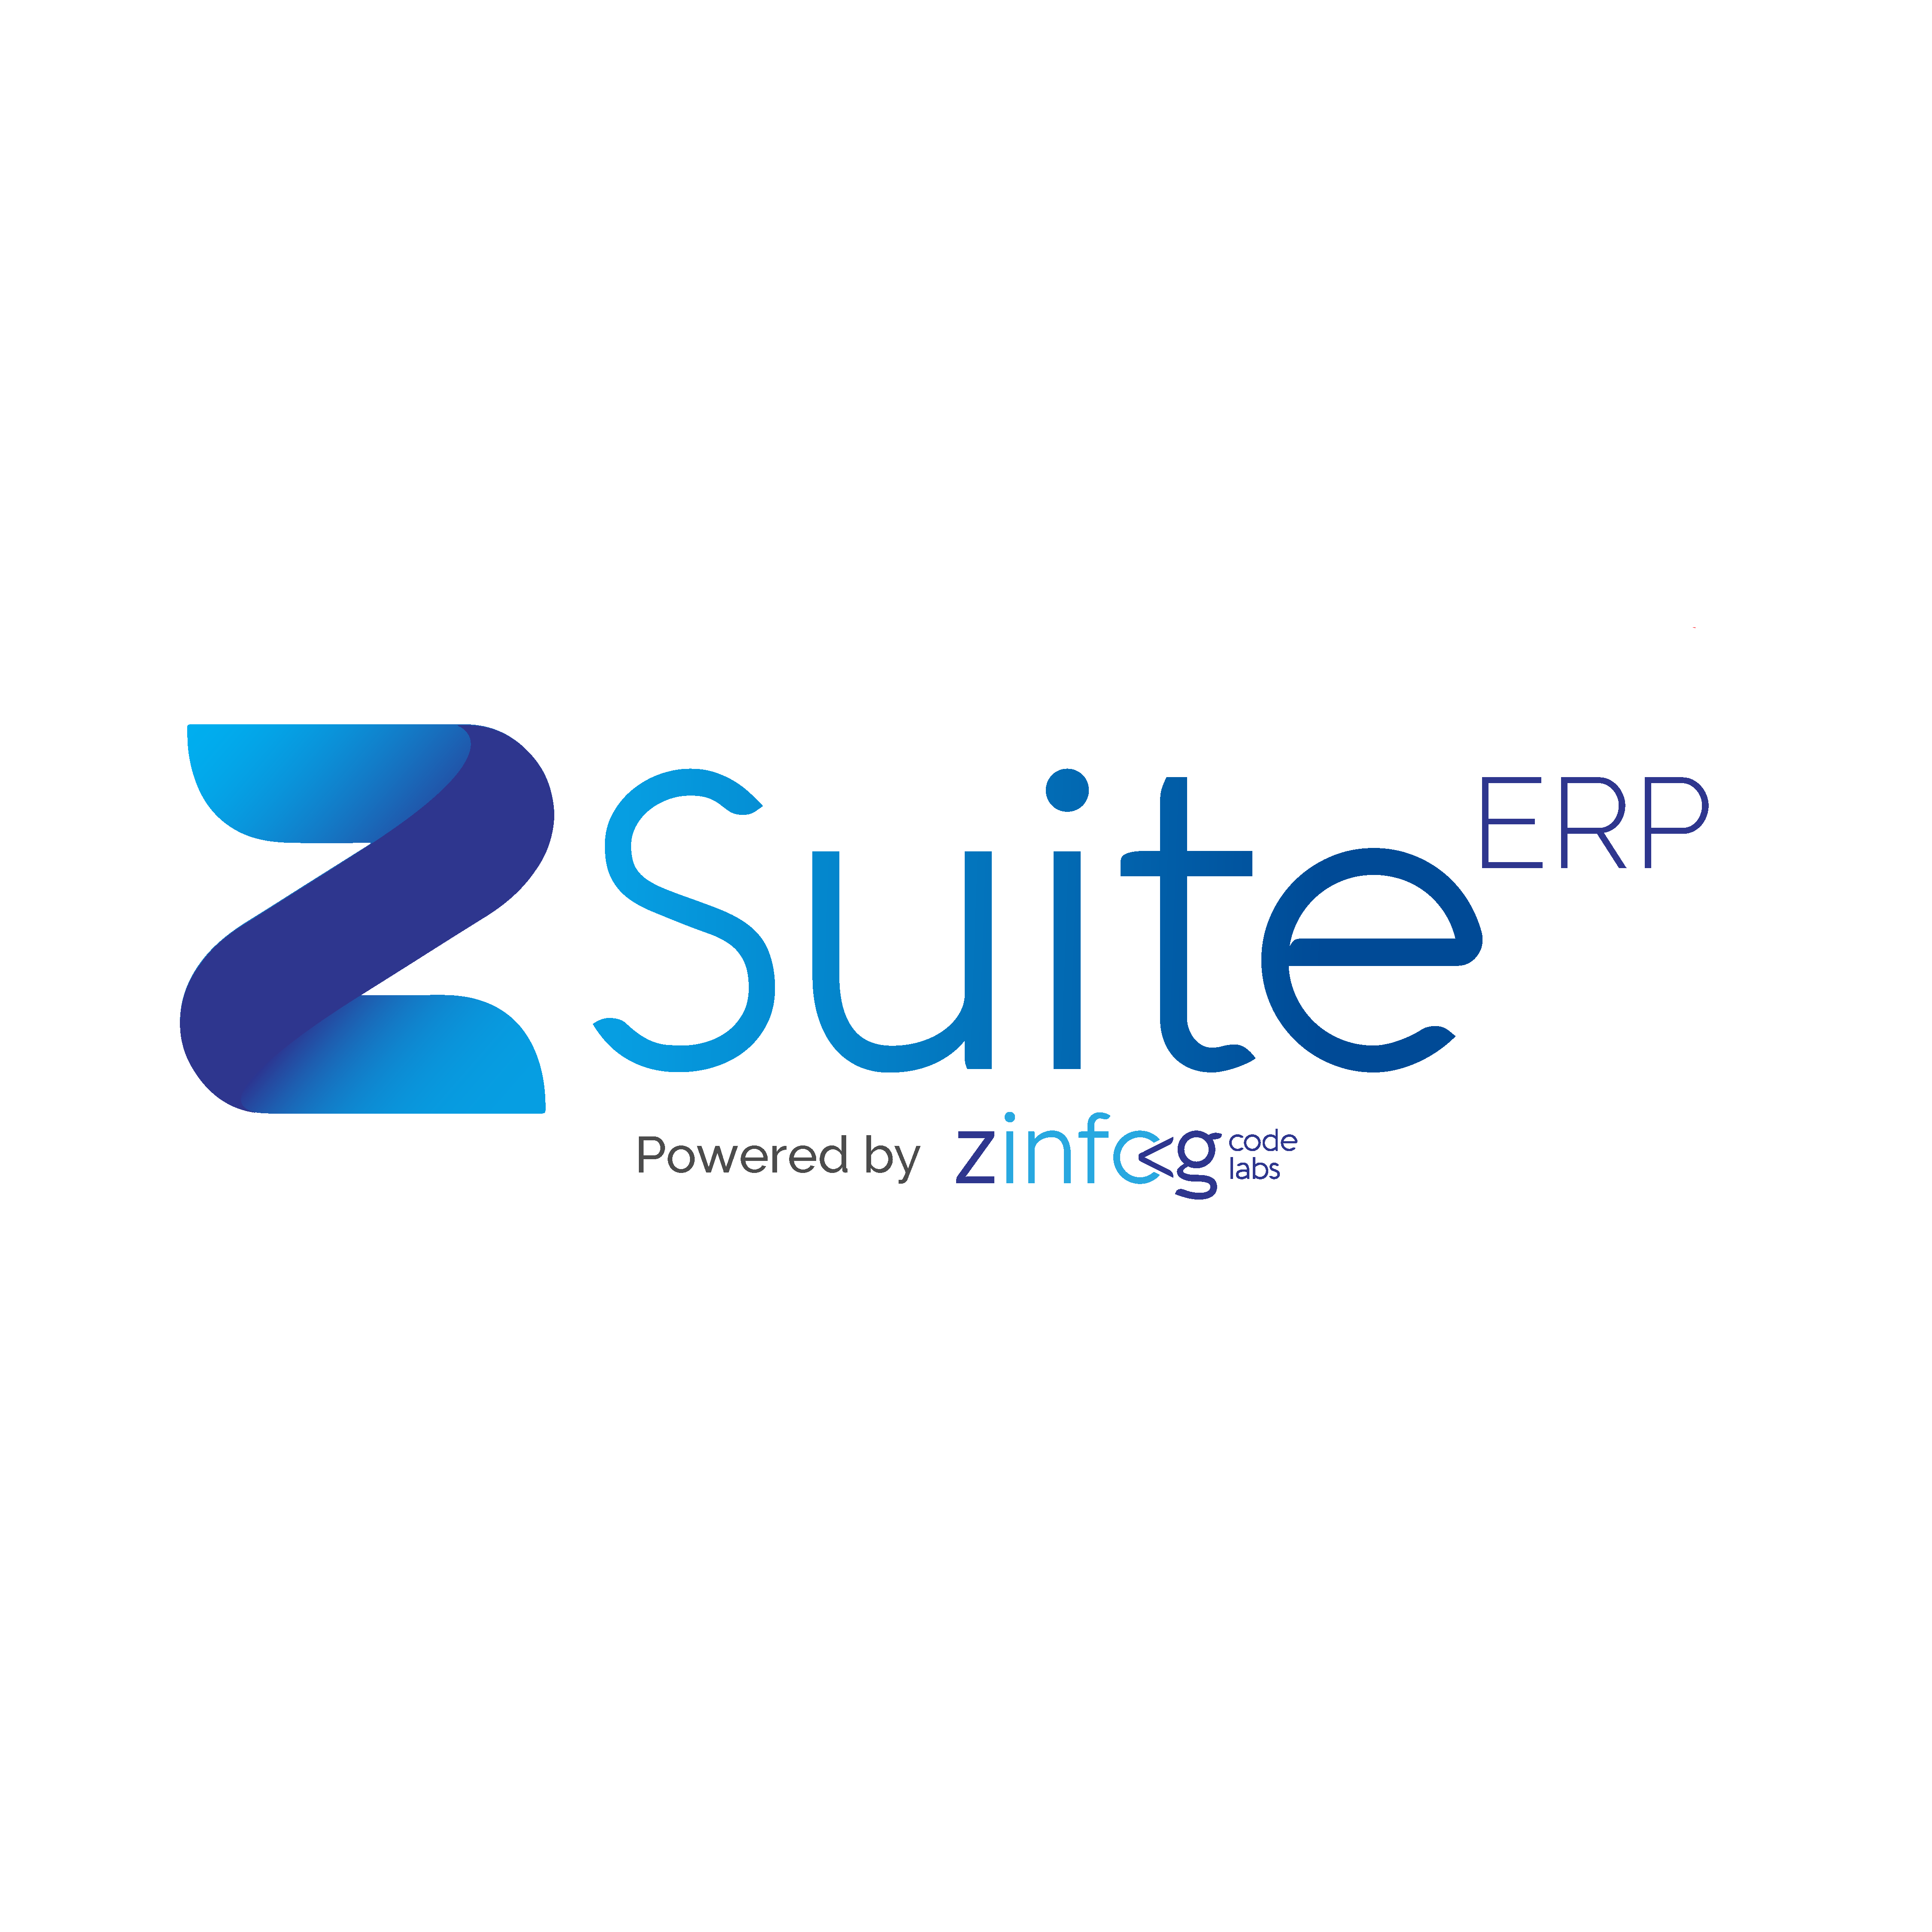 zsuite-01